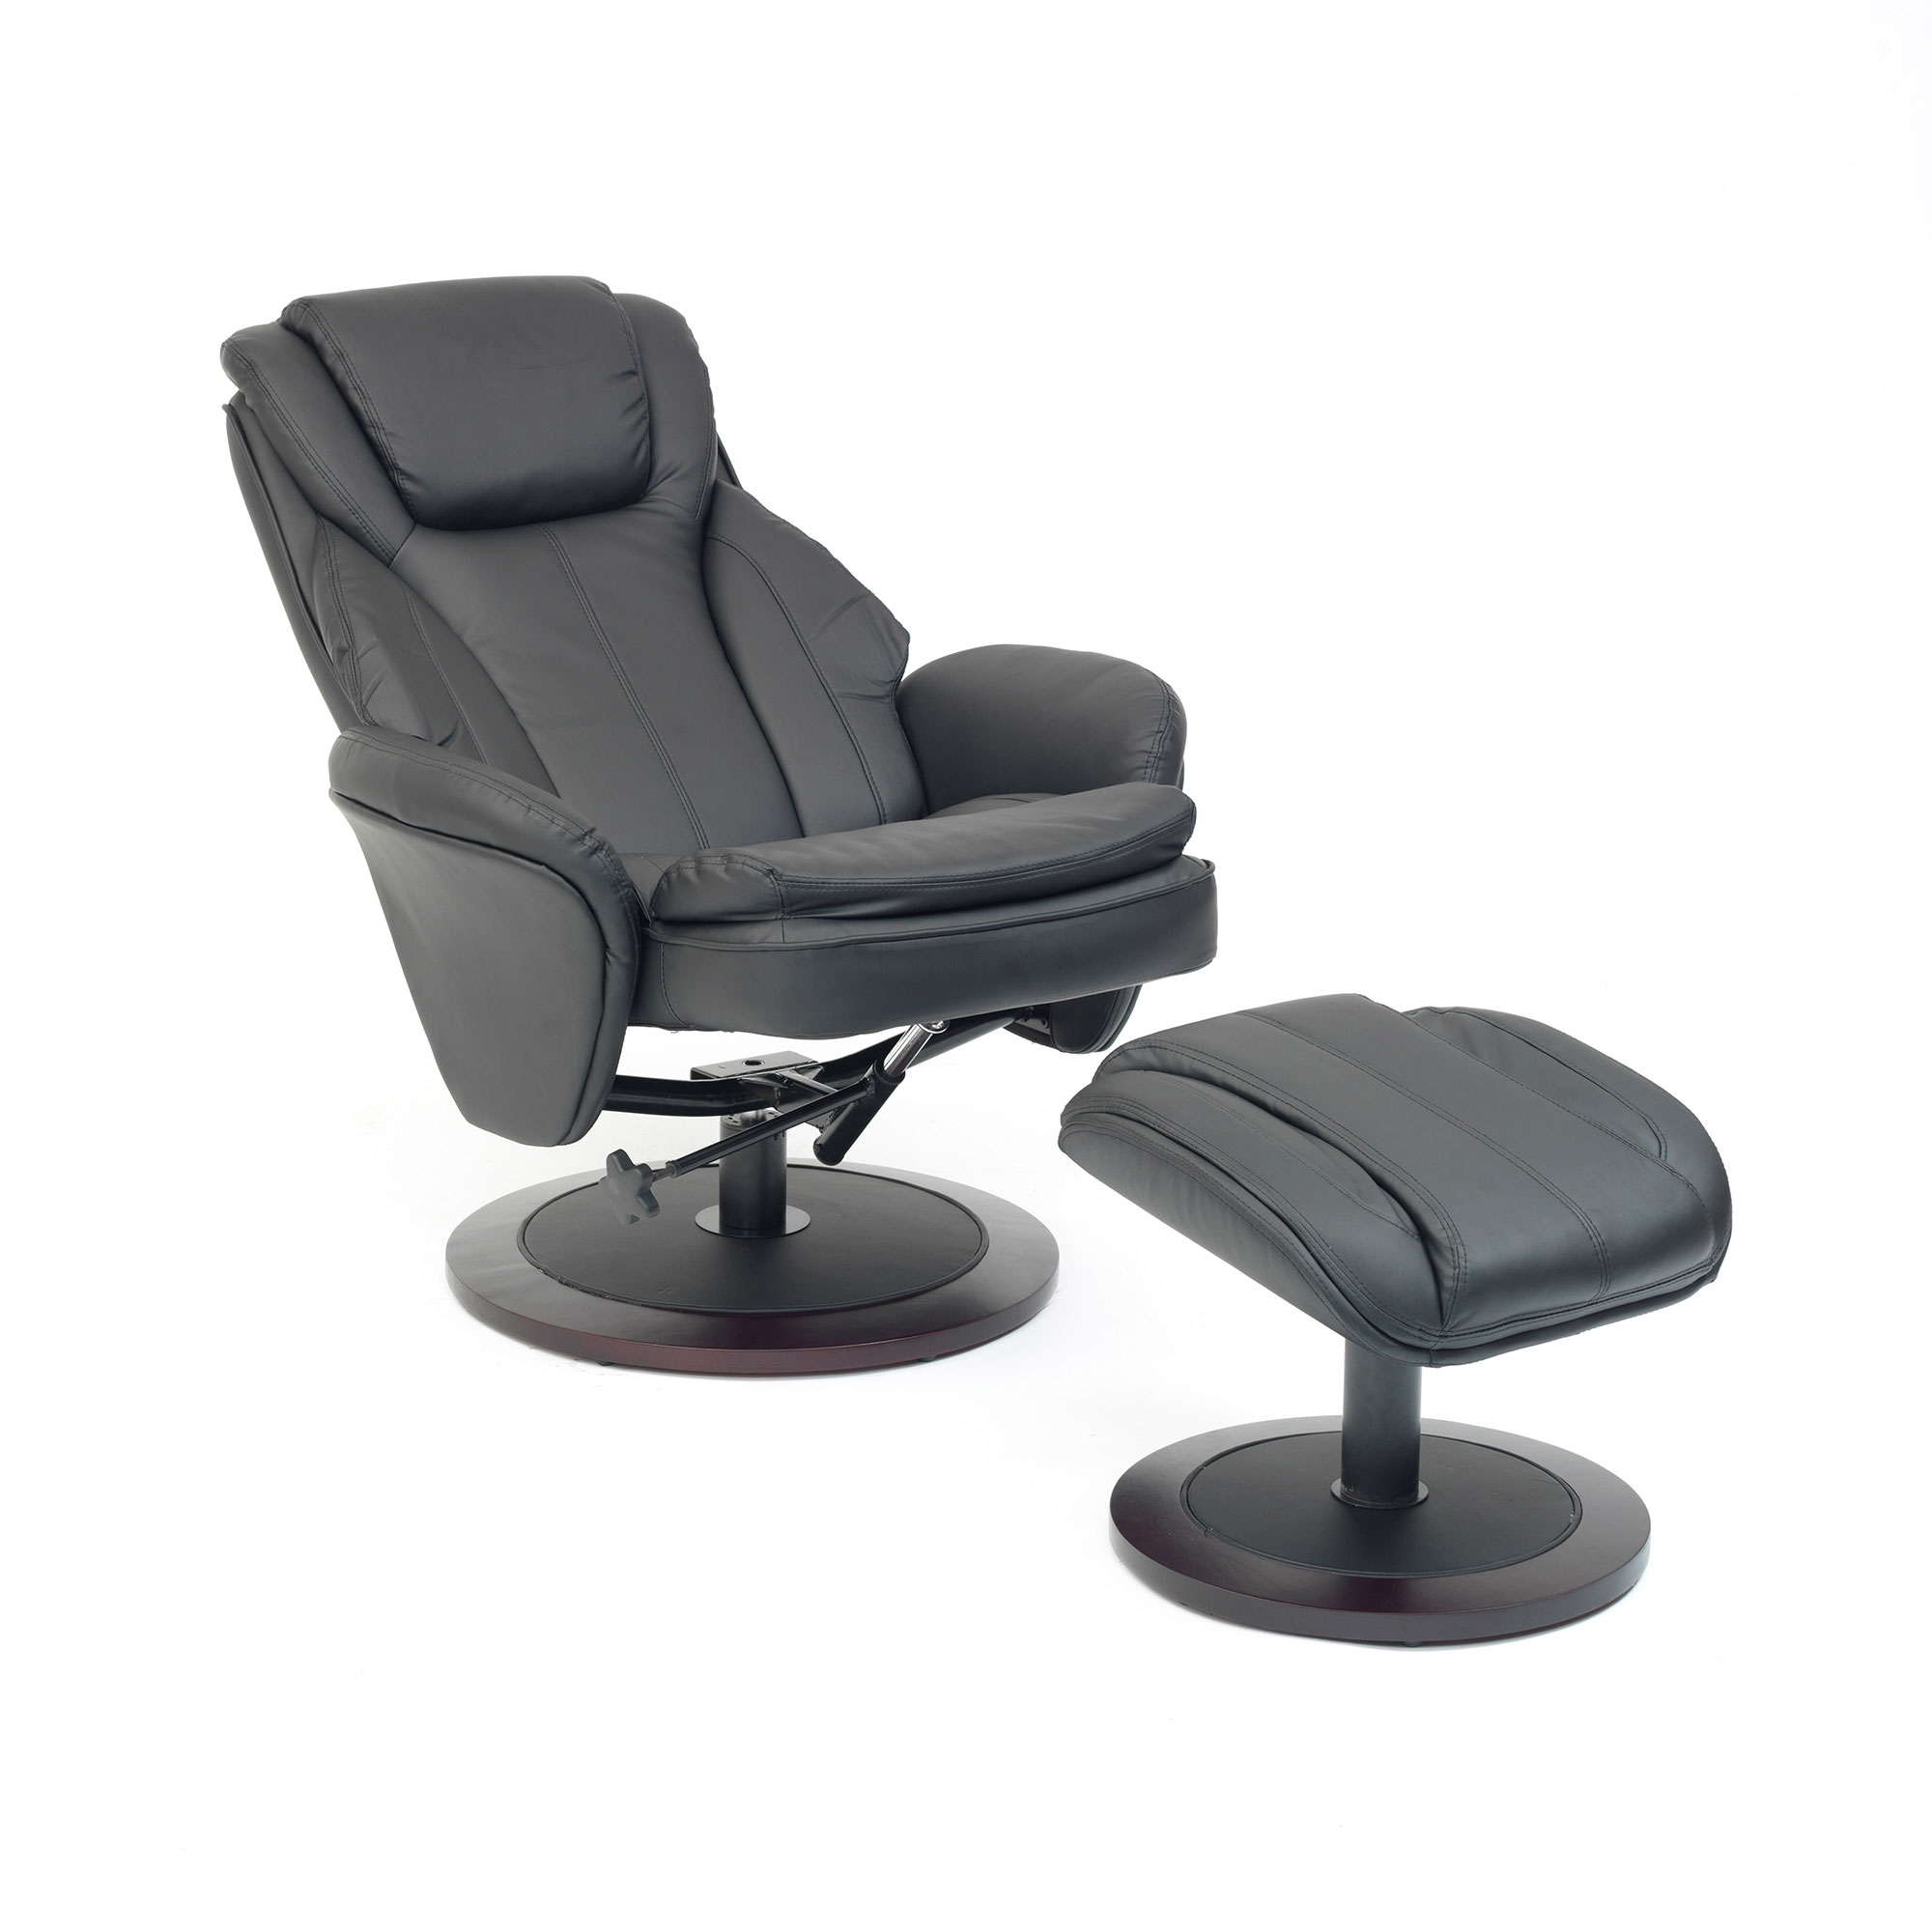 swivel chair feet camp chairs on sale florence recline with free foot stool all